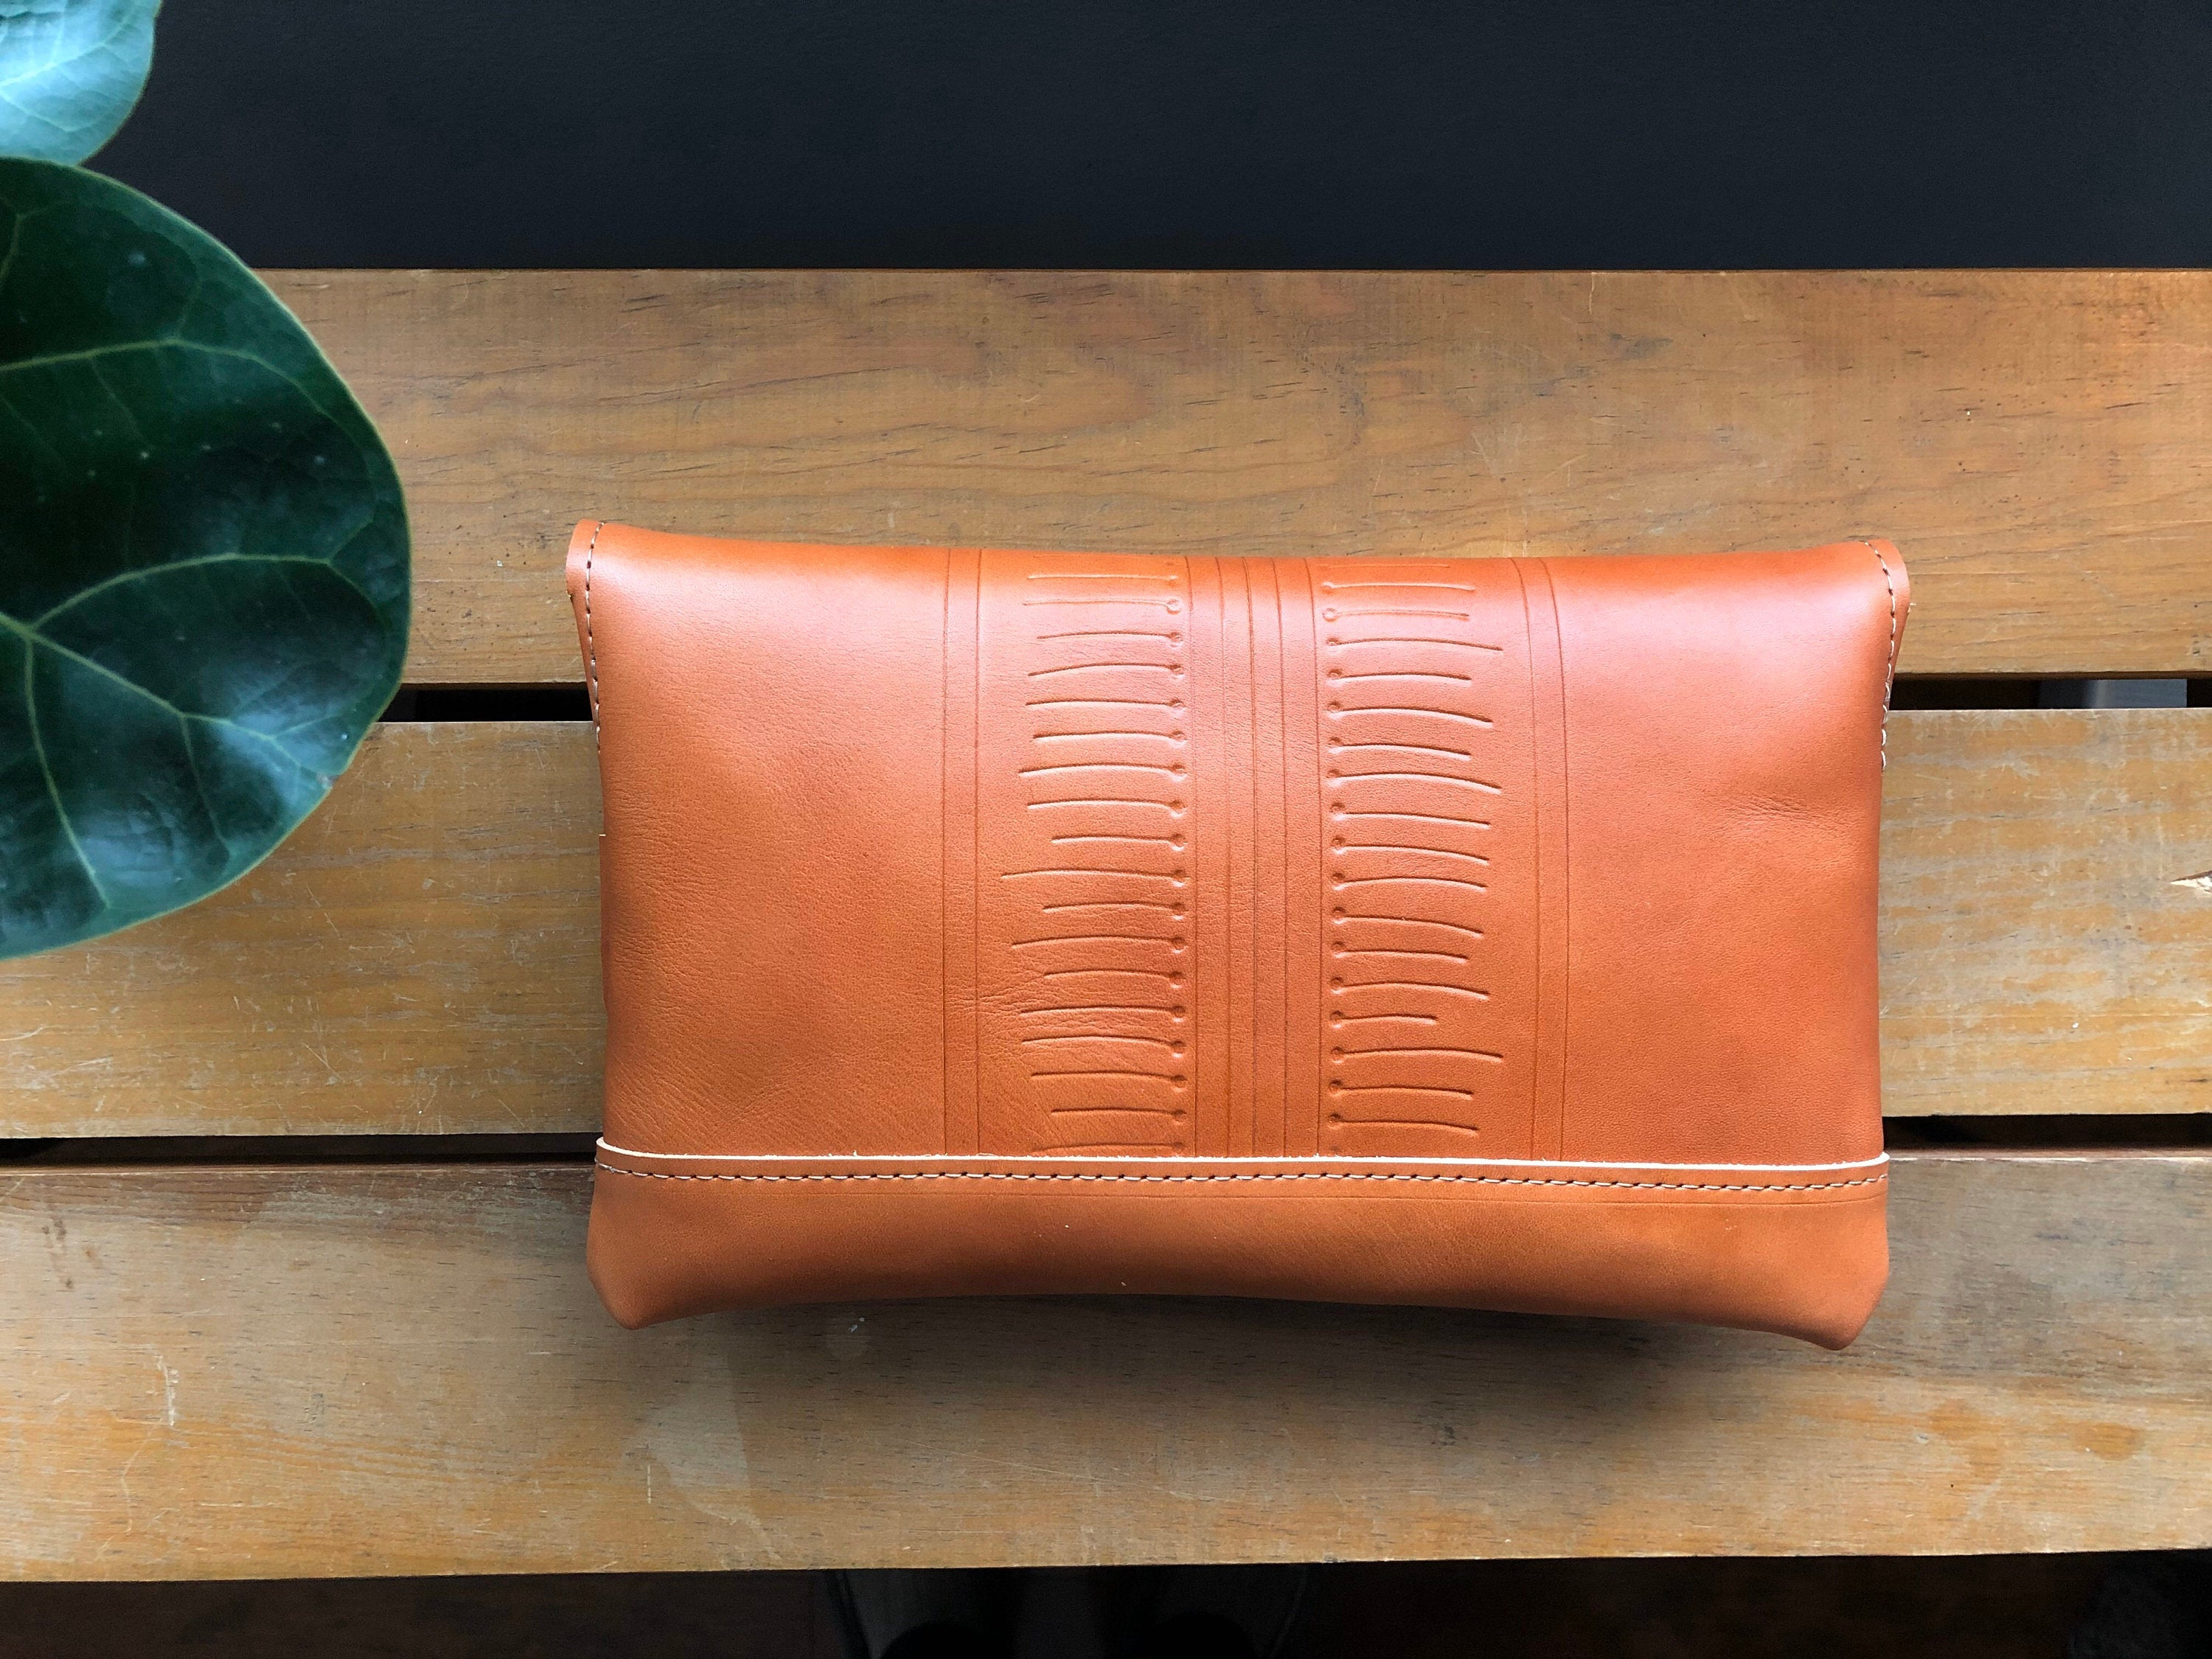 Back view of tan leather clutch with patterned detail sitting on wooden table near plant